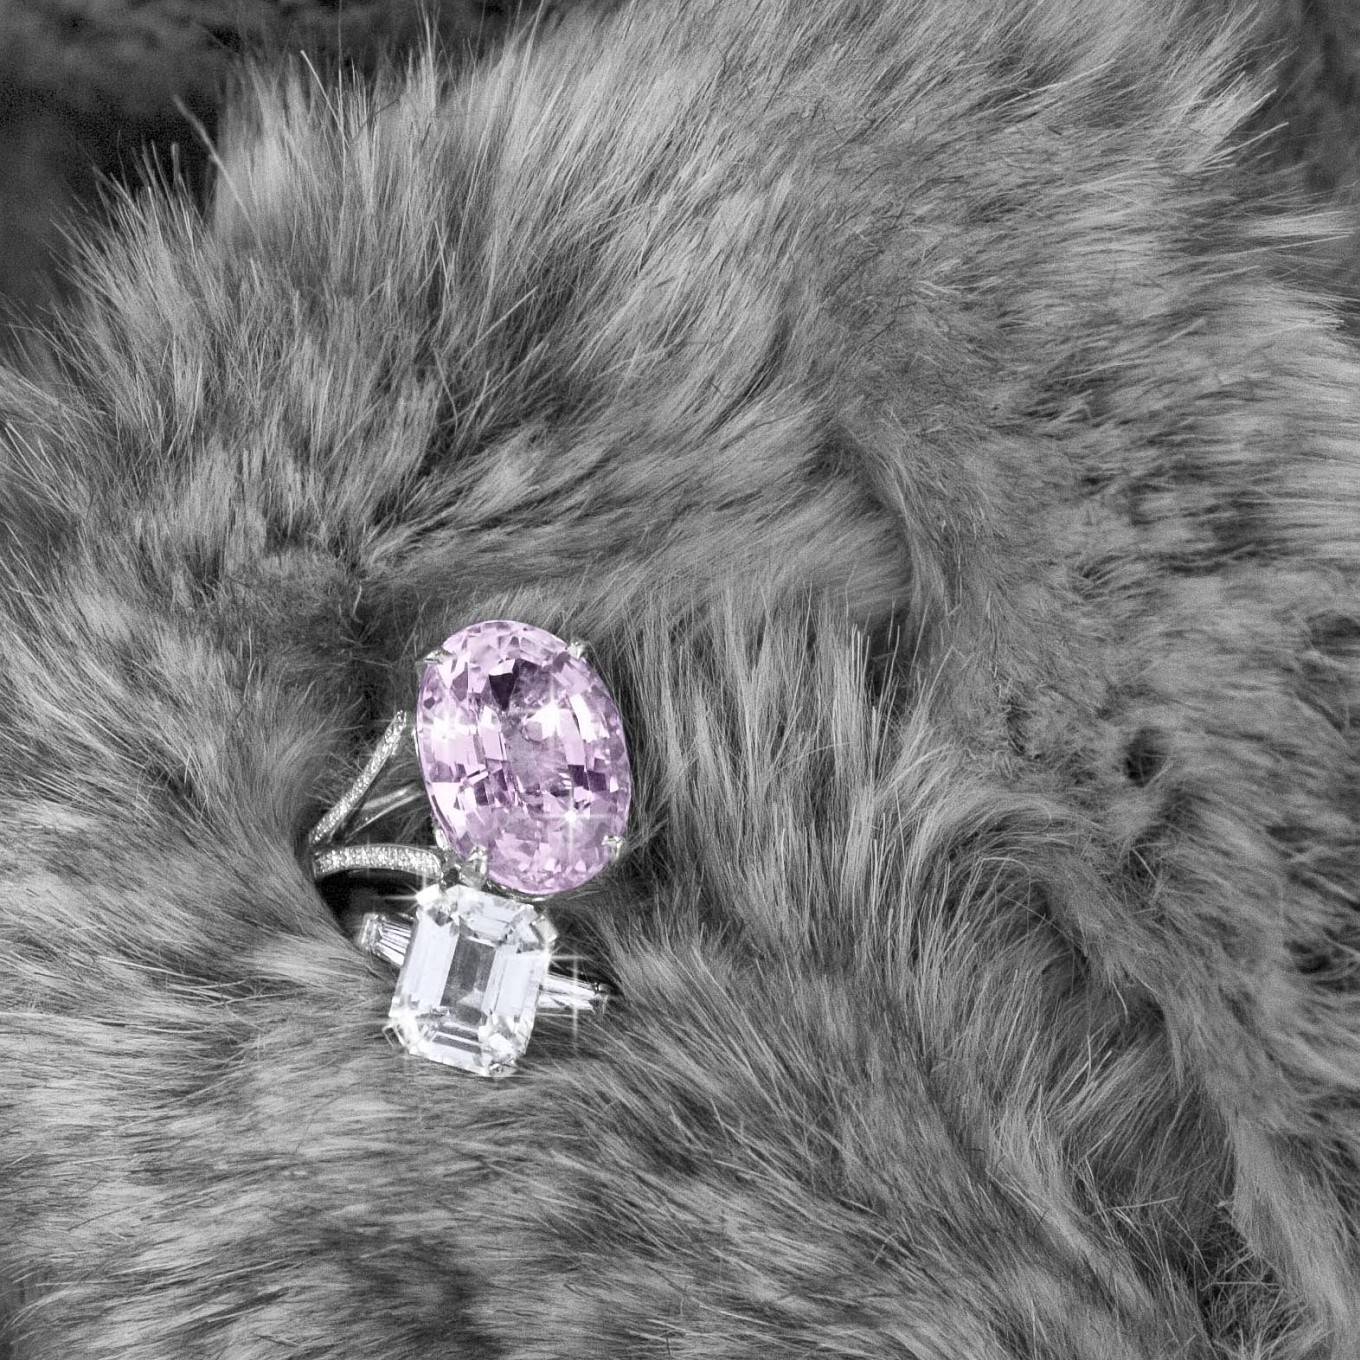 27 ct Oval Kunzite & diamond split band ring in white gold. Emerald cut diamond ring - price on request